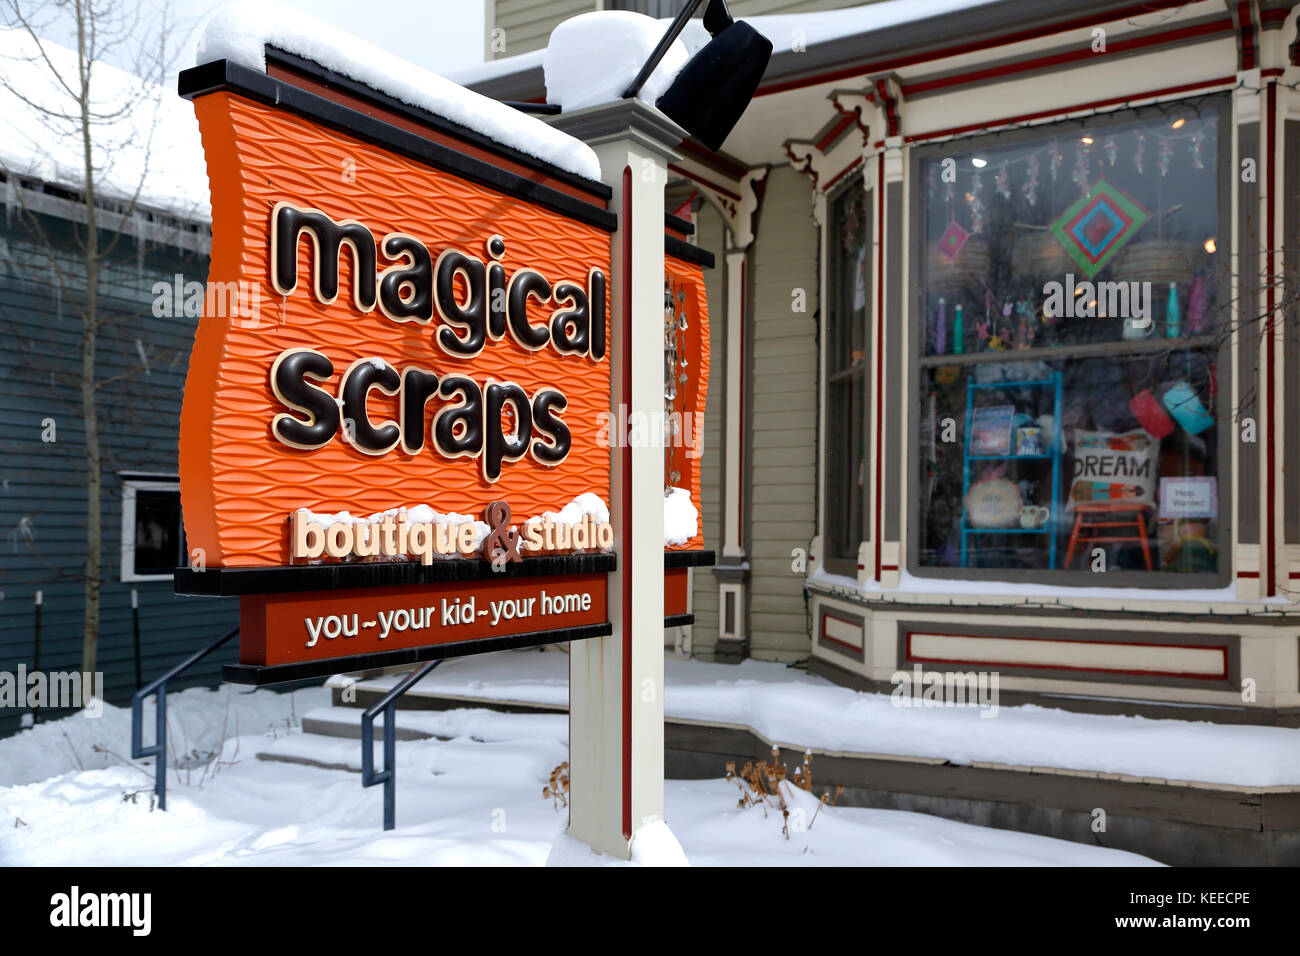 Shop sign for Magical Scraps (fabric and children's clothing store), Breckenridge, Colorado USA - Stock Image